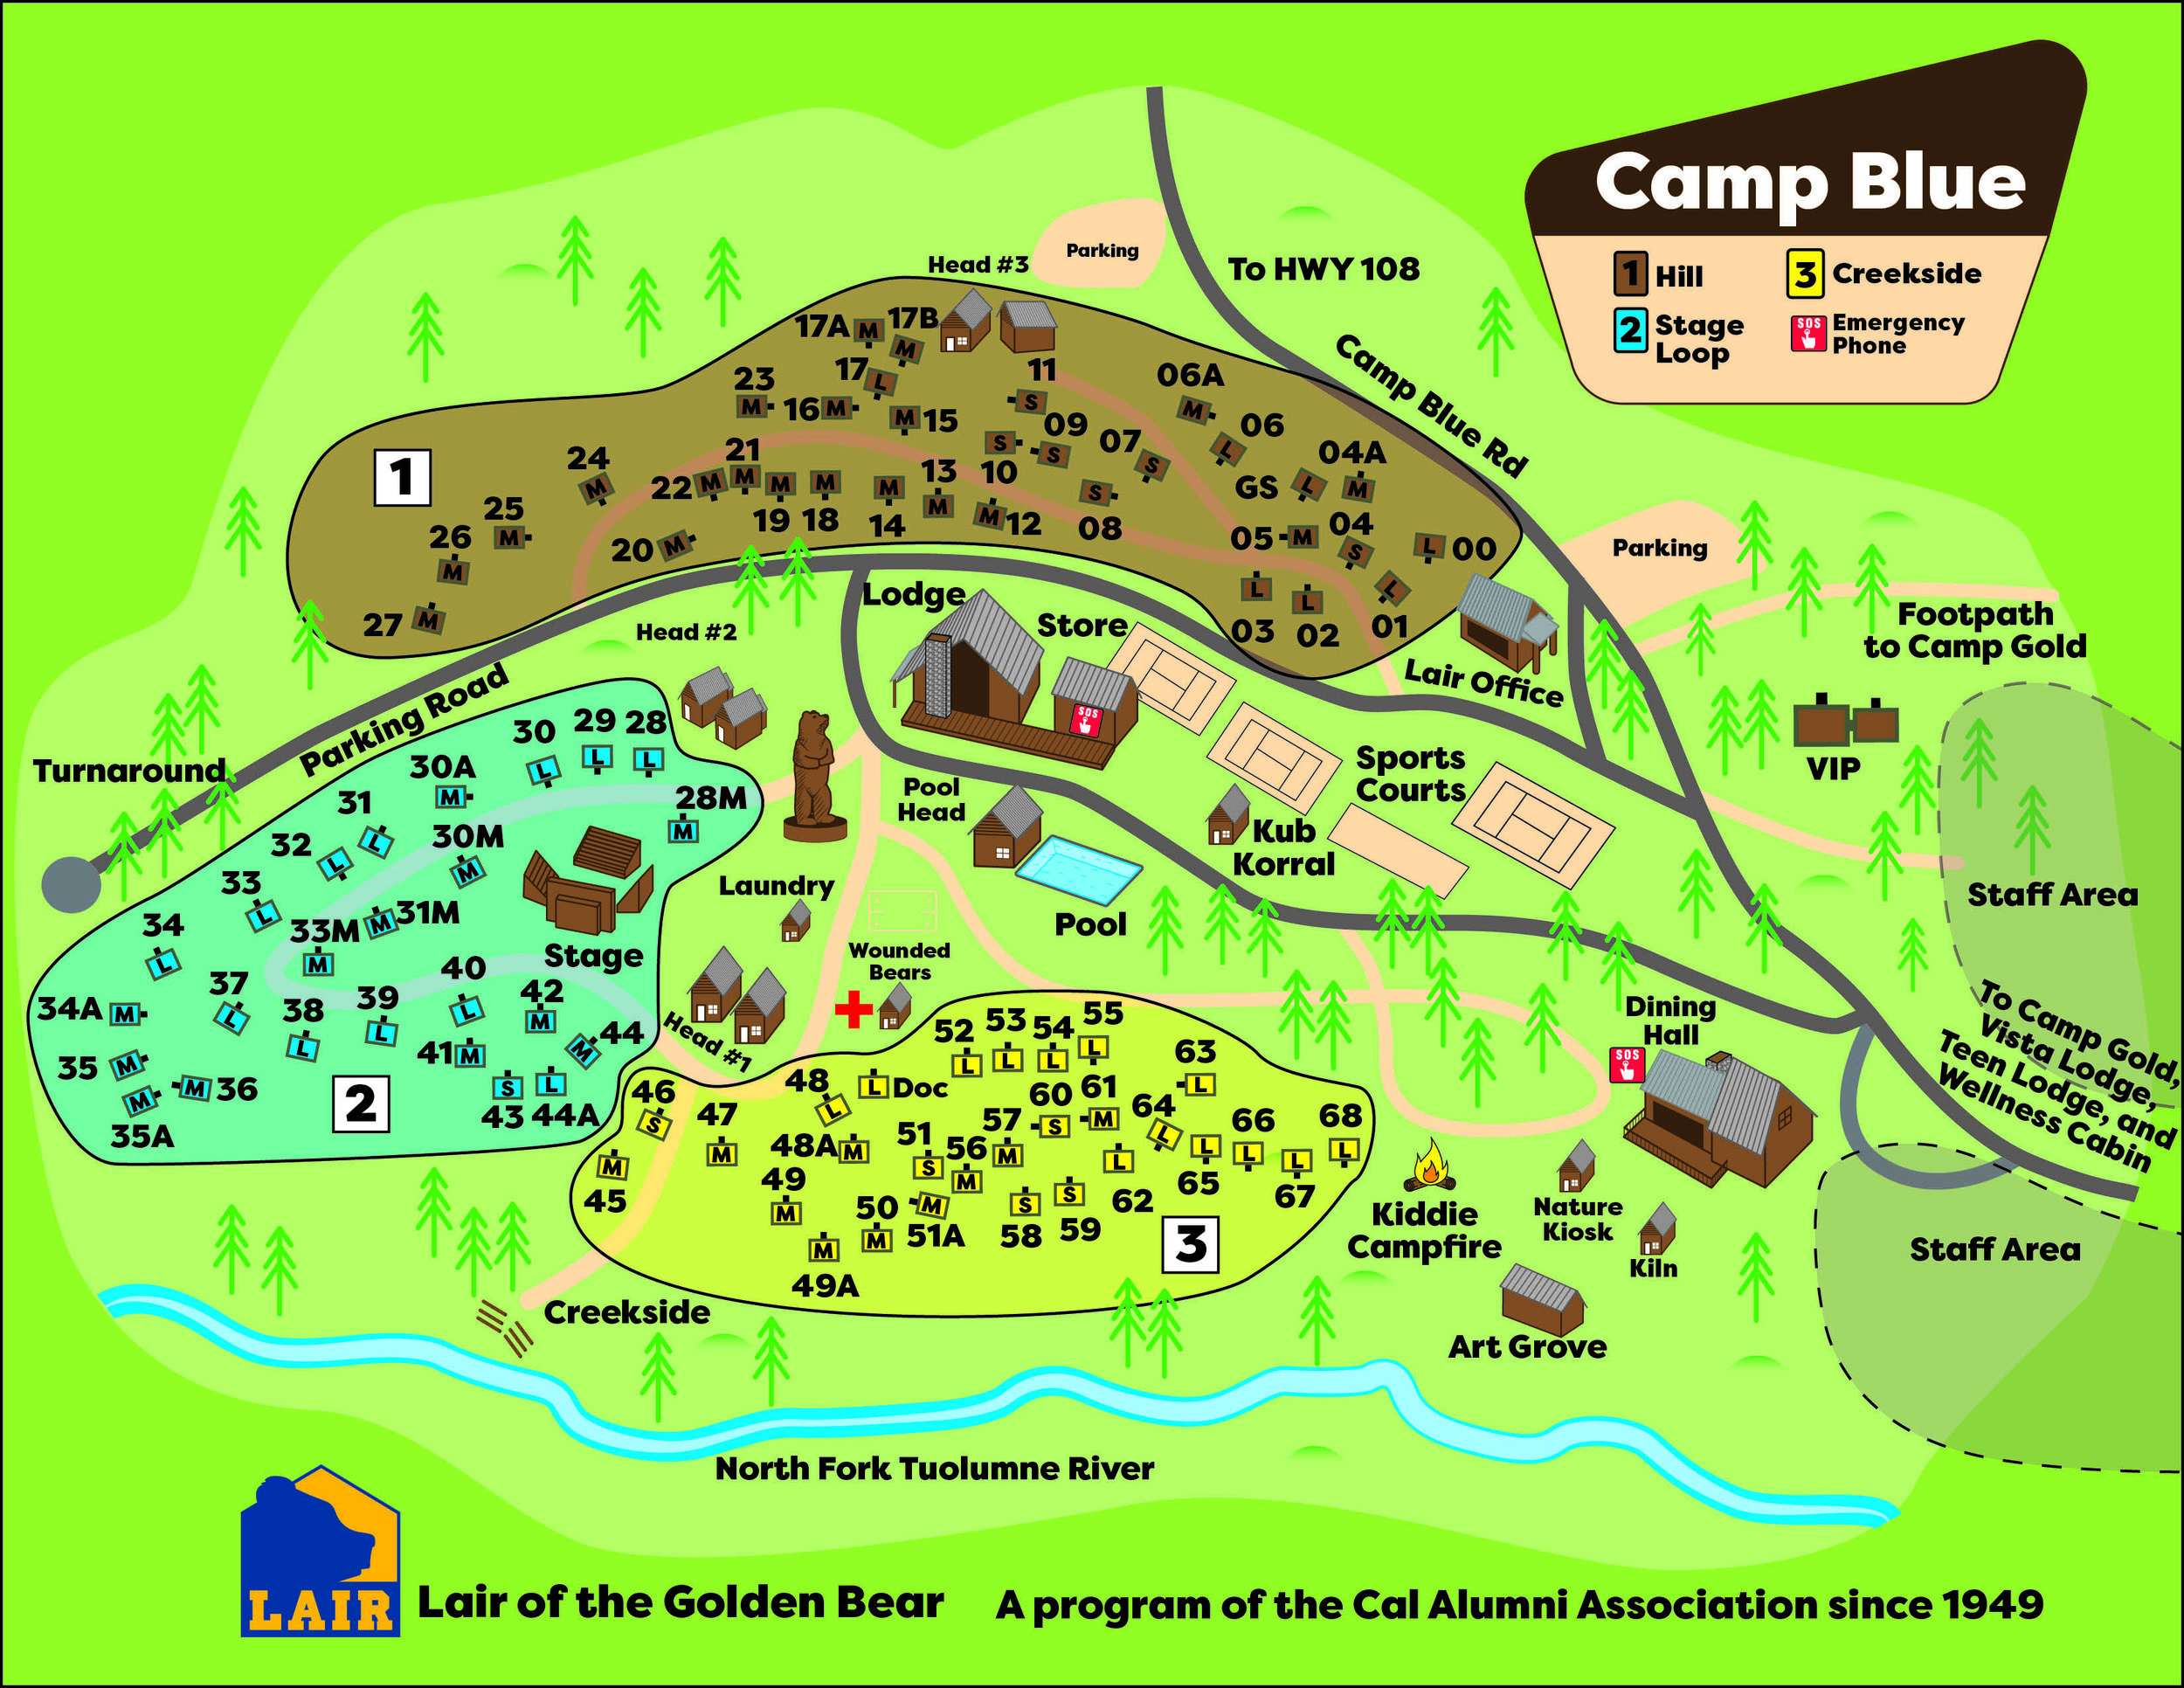 2018 Camp Blue Map.jpg